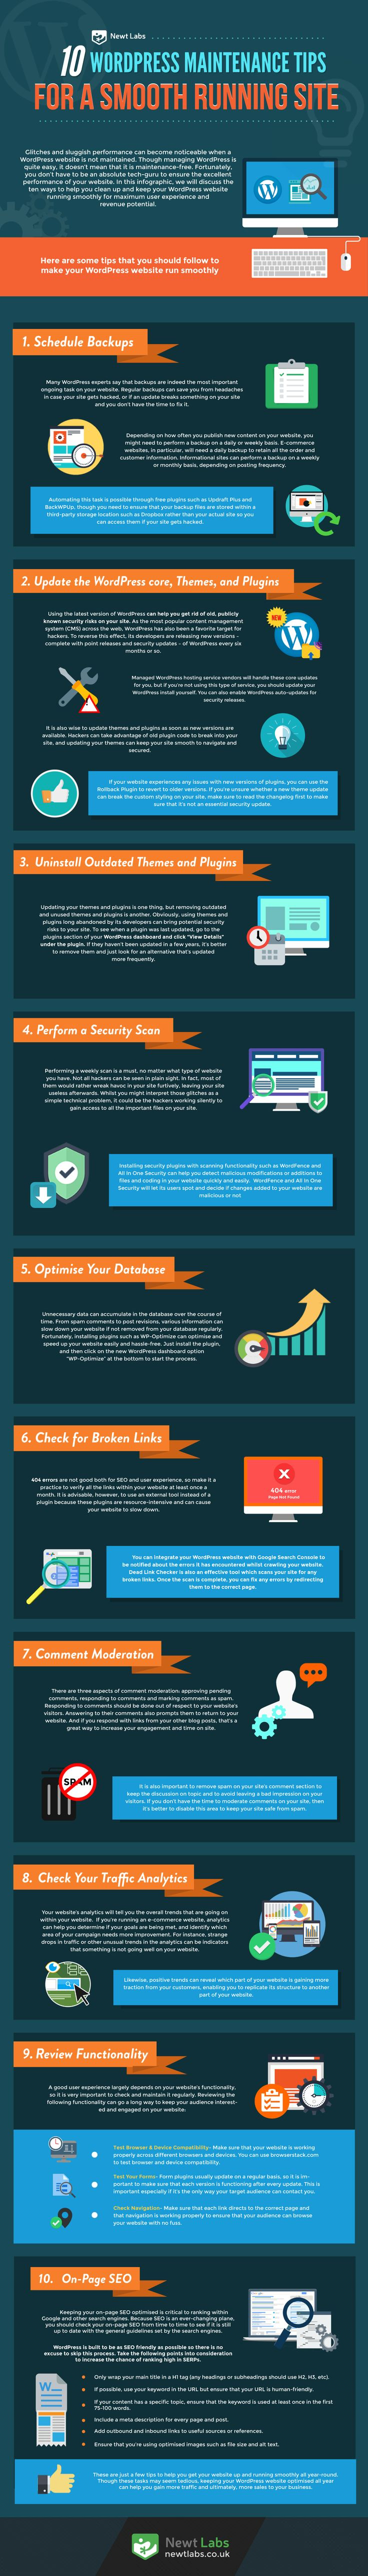 10 WordPress Maintenance Tips For A Smooth Running Site - #Infographic